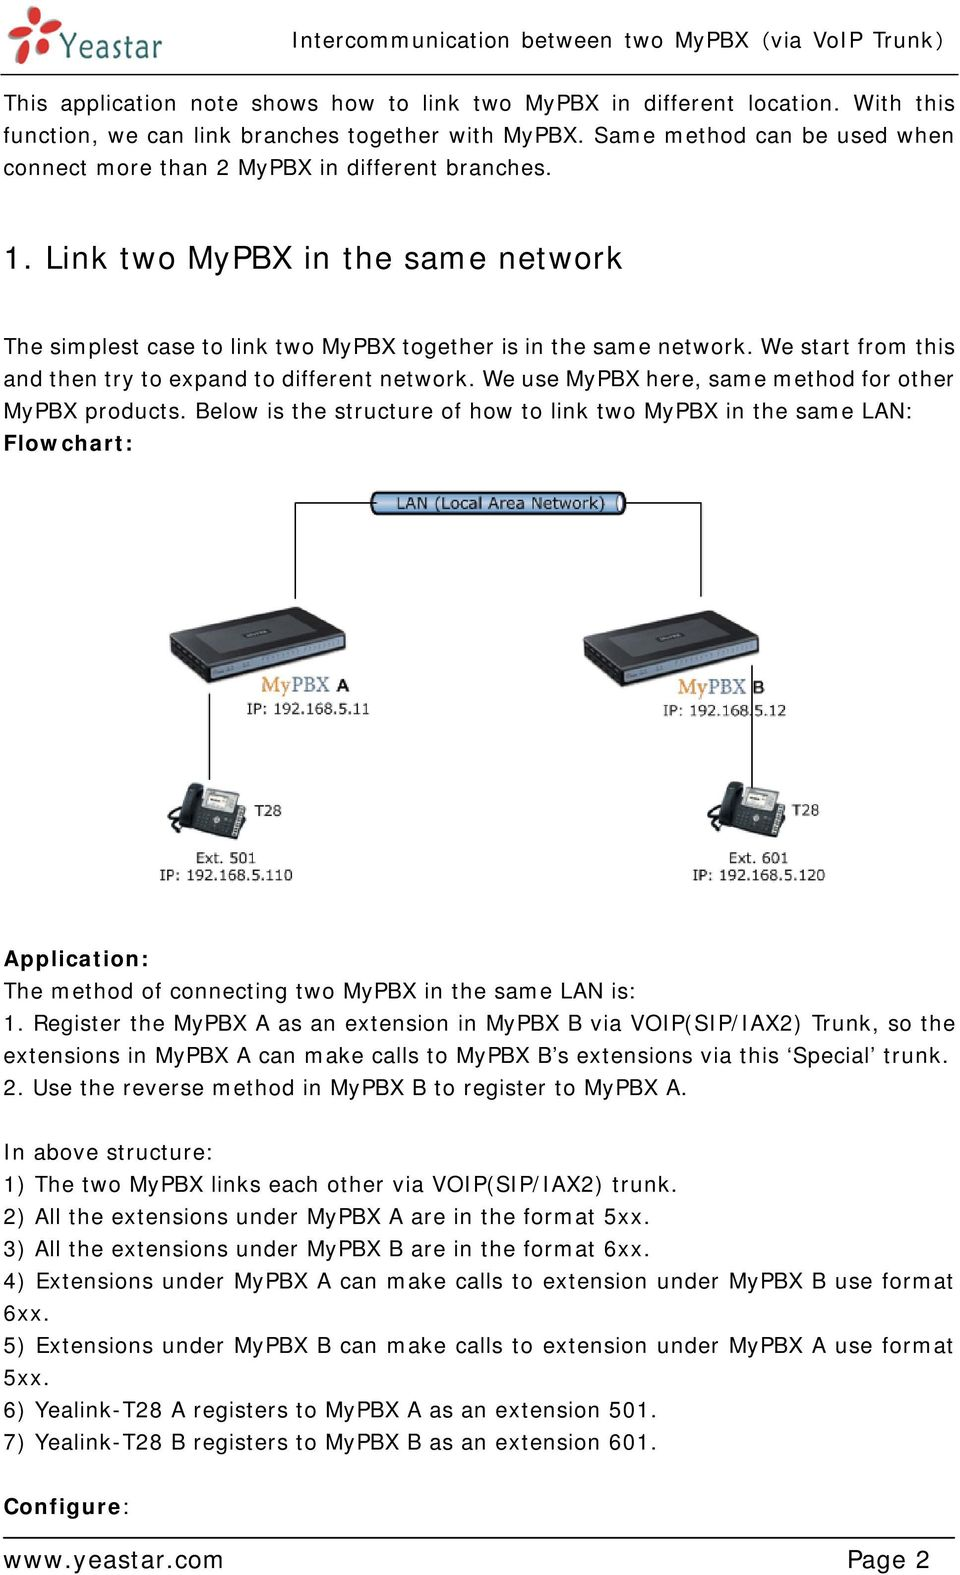 We start from this and then try to expand to different network. We use MyPBX here, same method for other MyPBX products.